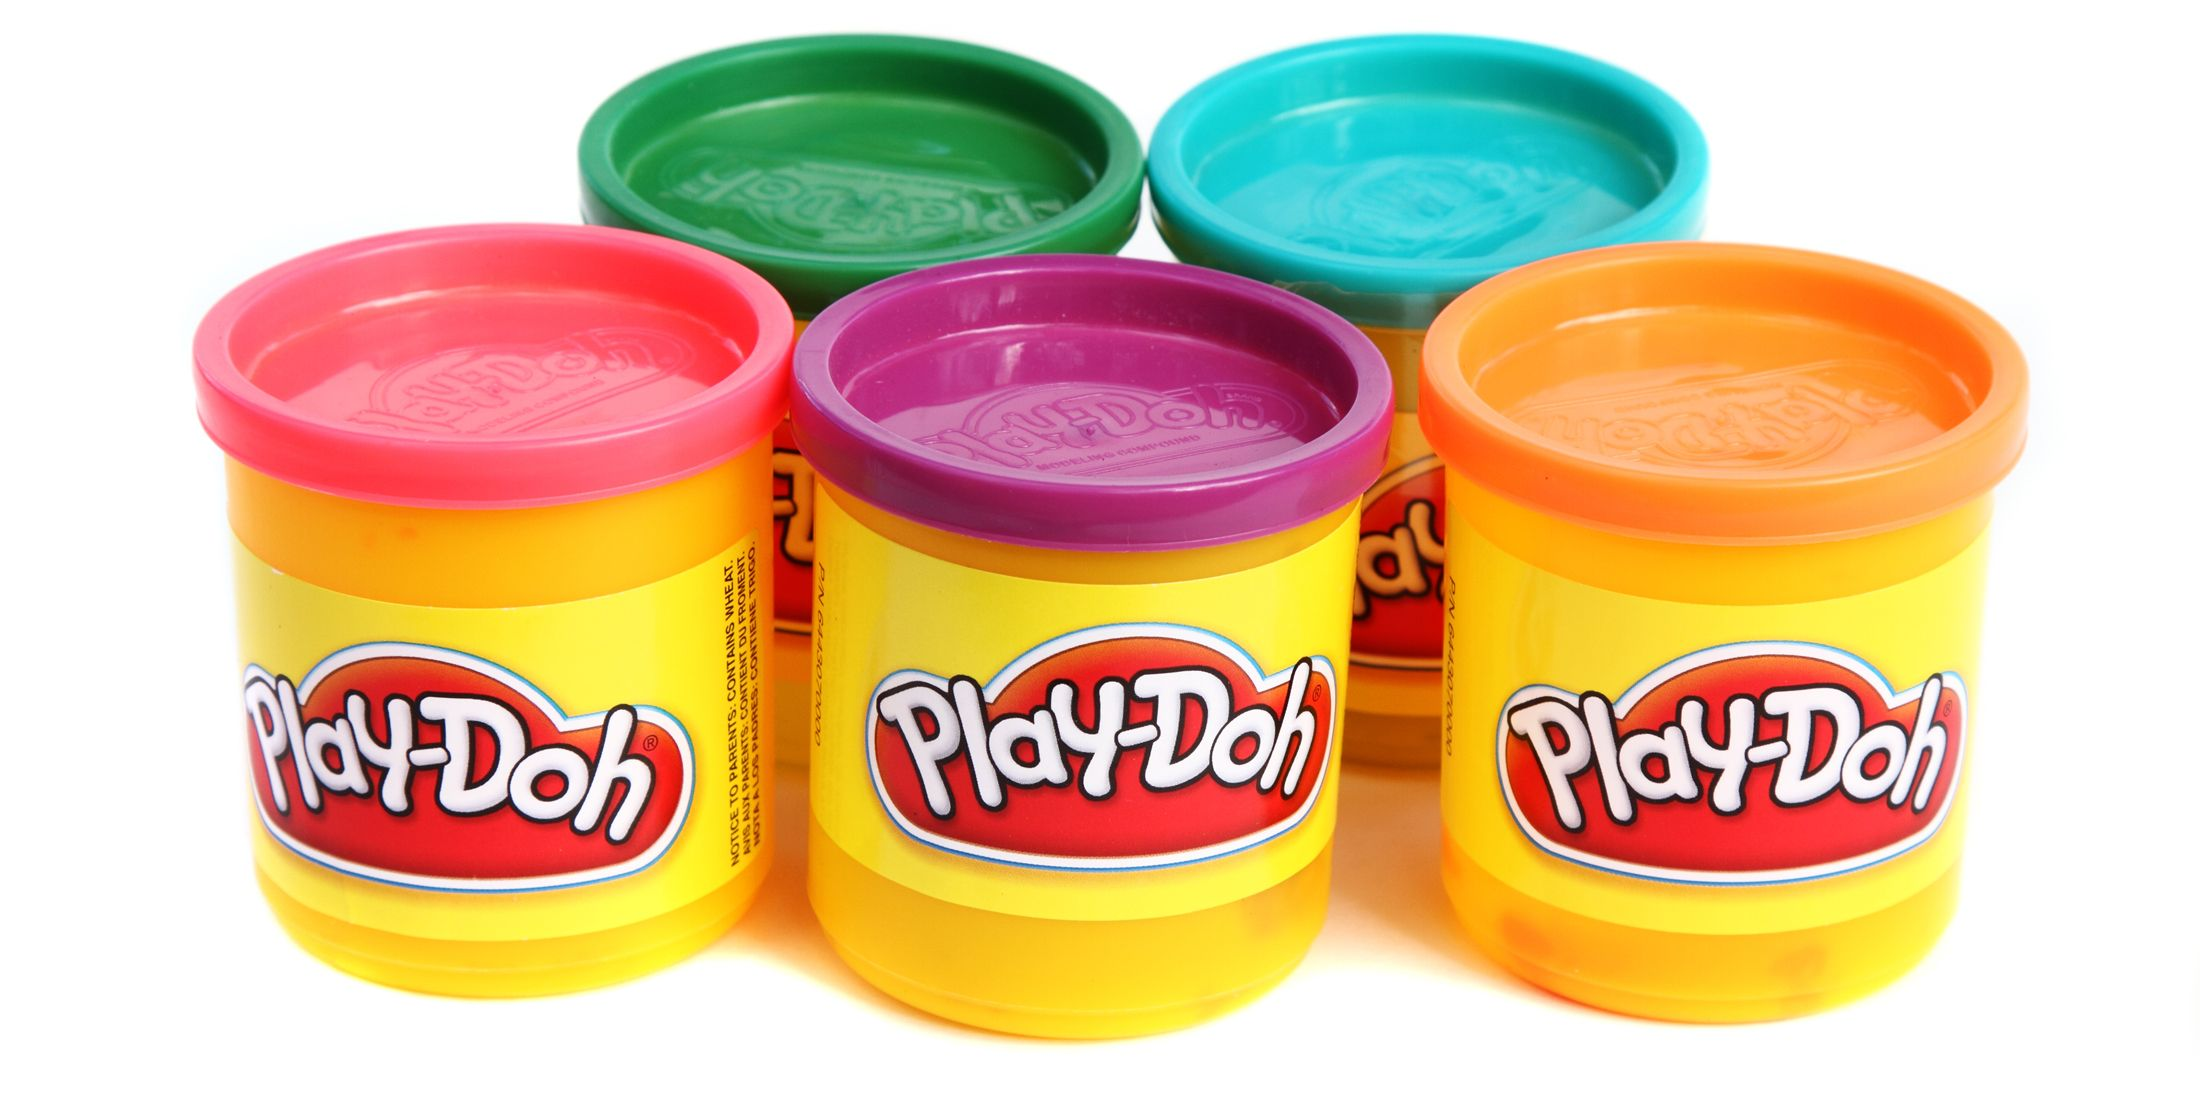 Fun Facts You Never Knew About Play-Doh